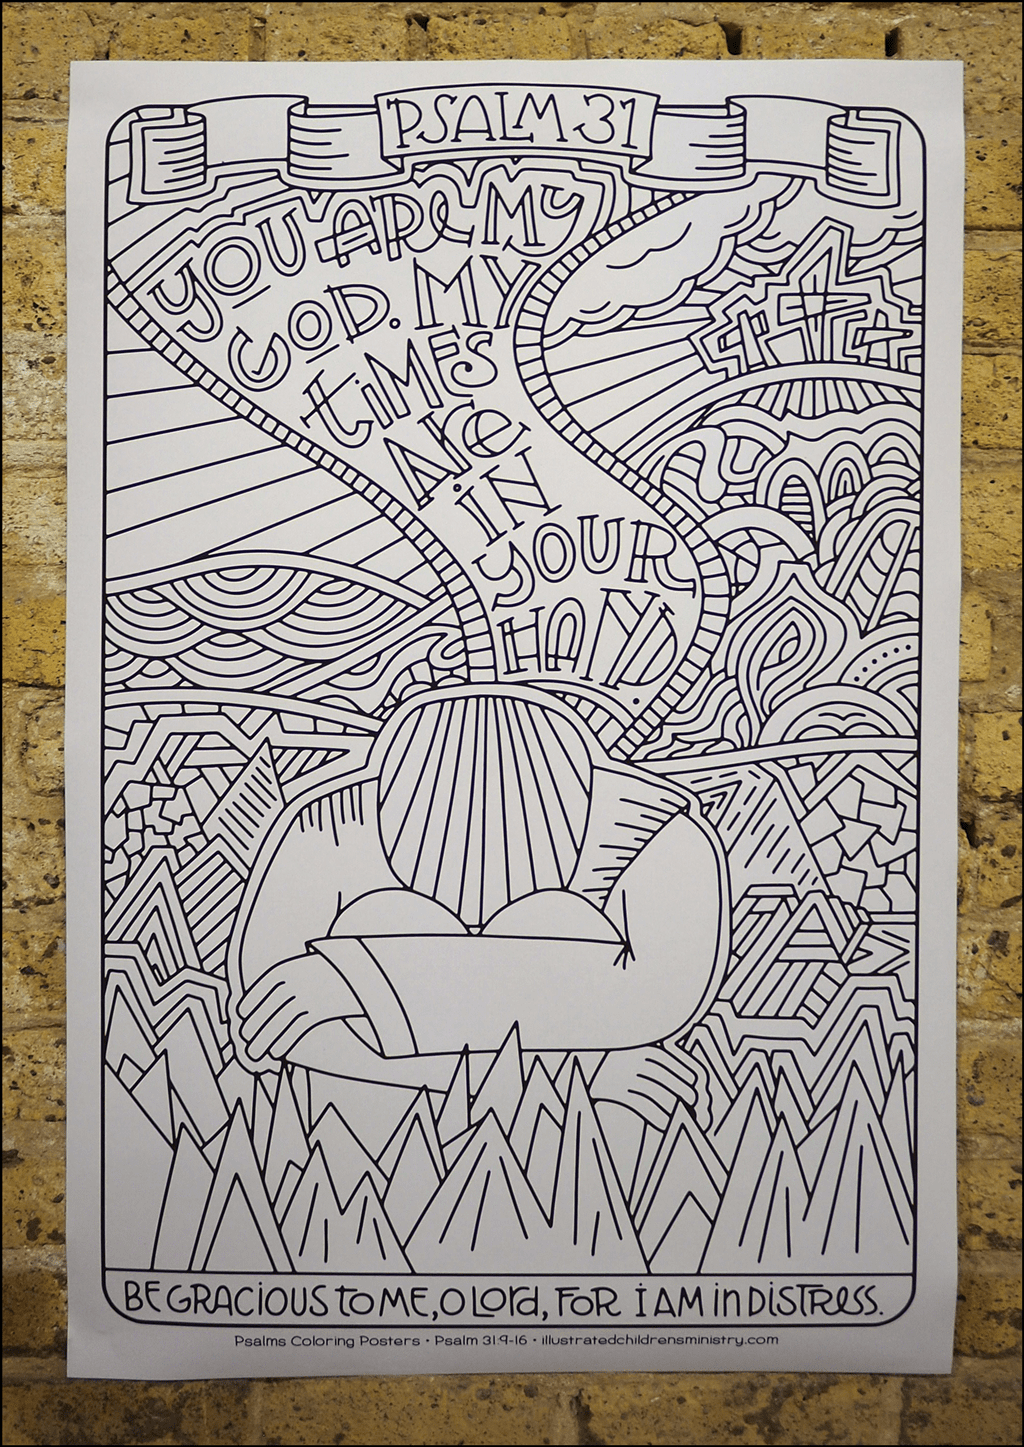 Psalms coloring poster - Be gracious to me, O Lord